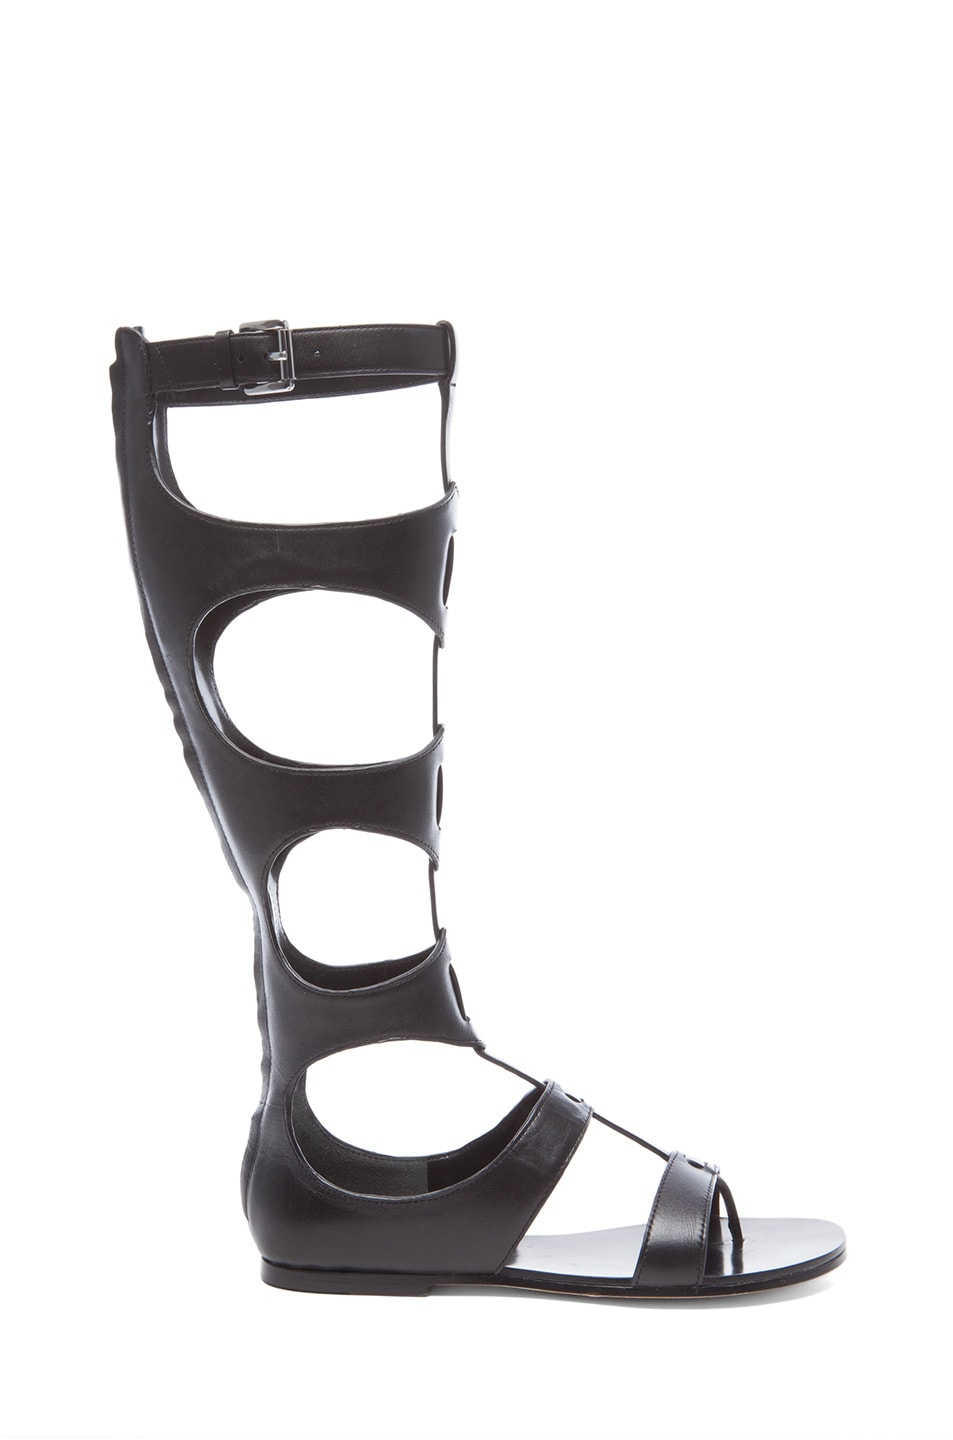 7508101d2f11 Image 1 of Sigerson Morrison Bodie Leather Gladiator Sandals in Black